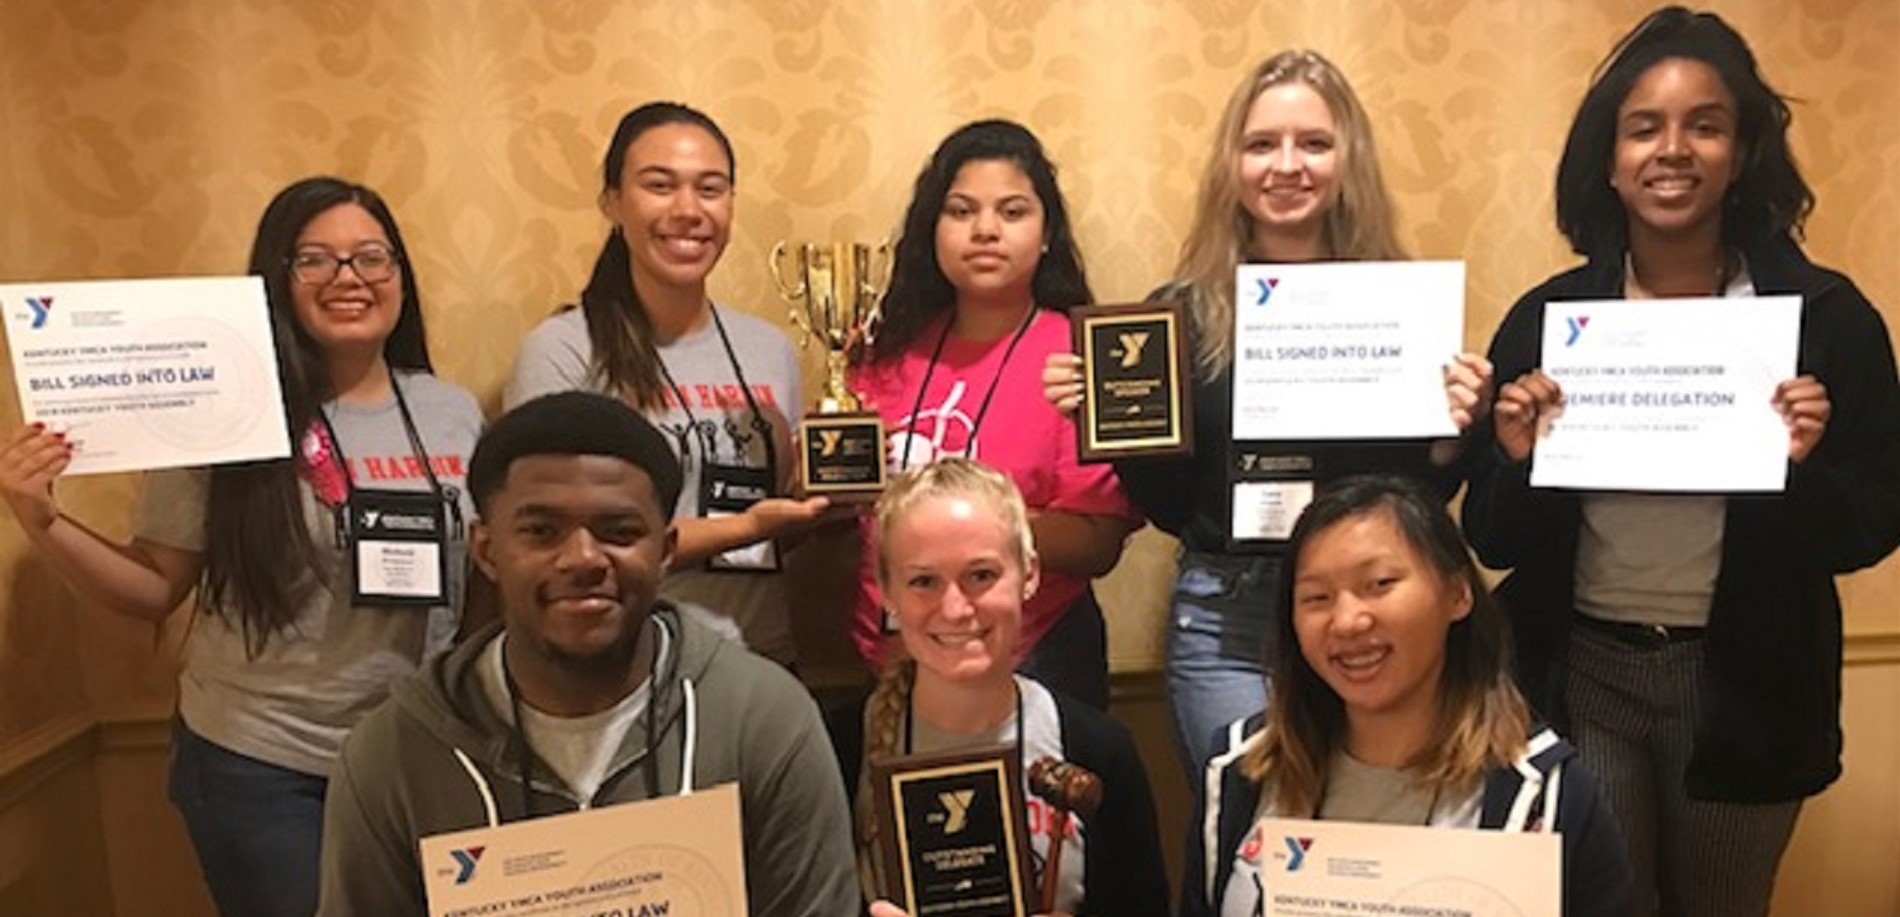 The John Hardin High School KYA Delegation earned the top award at this year's conference - BEST DELEGATION!